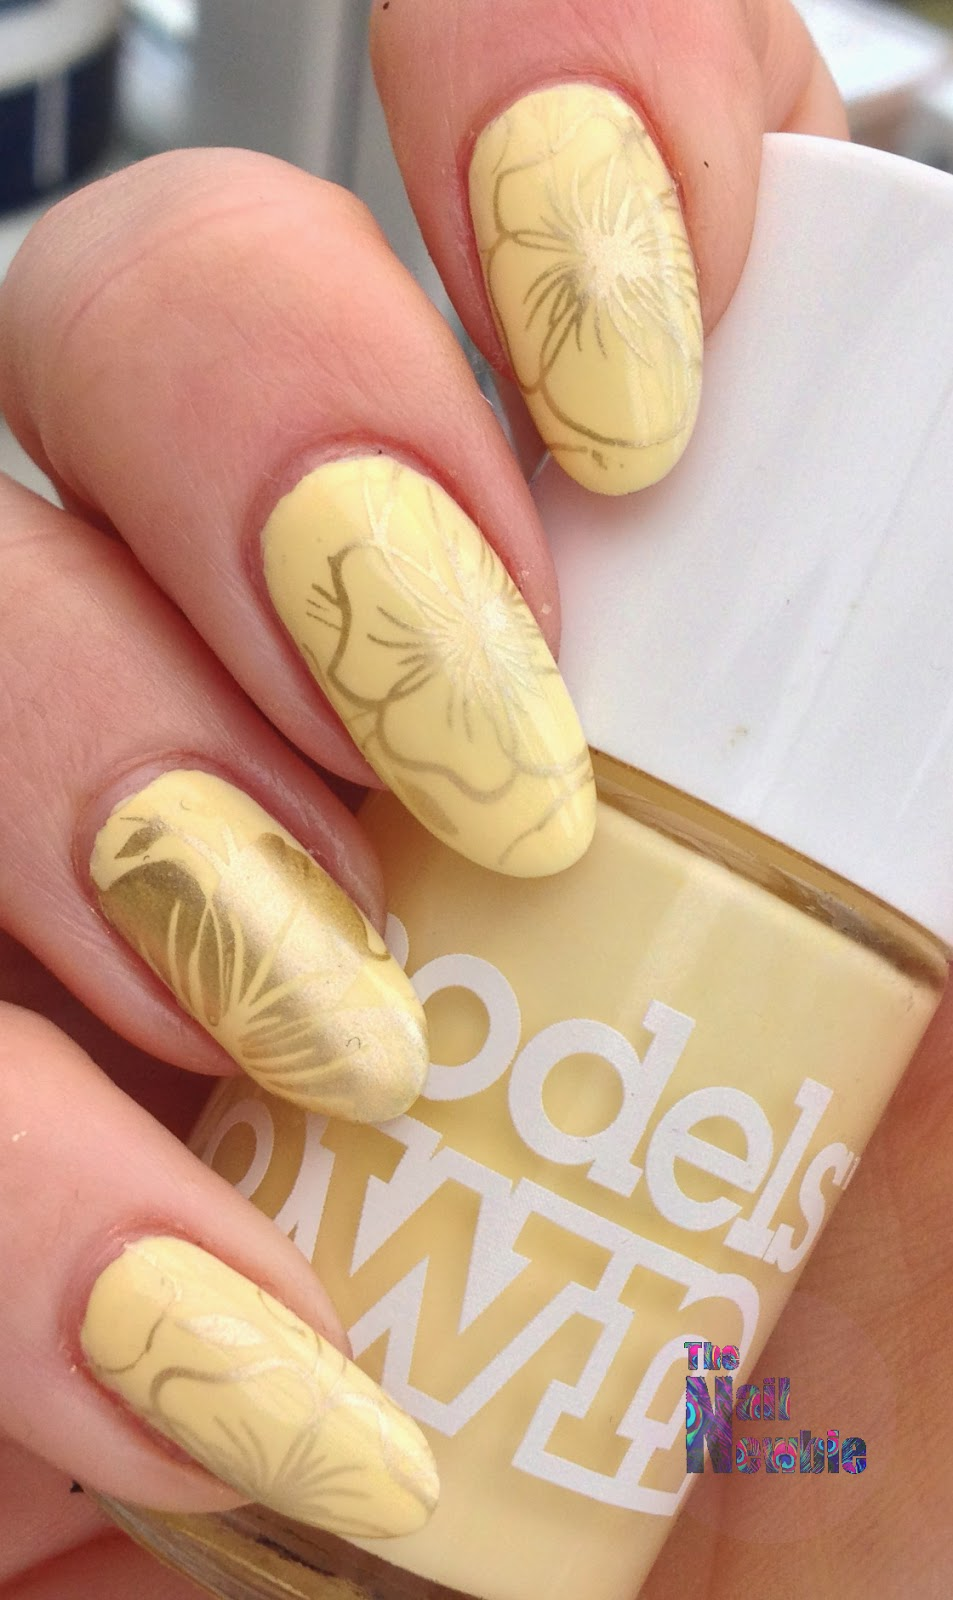 Nail Newbie Notd: Nail Newbie: GOT Polish? Yellow